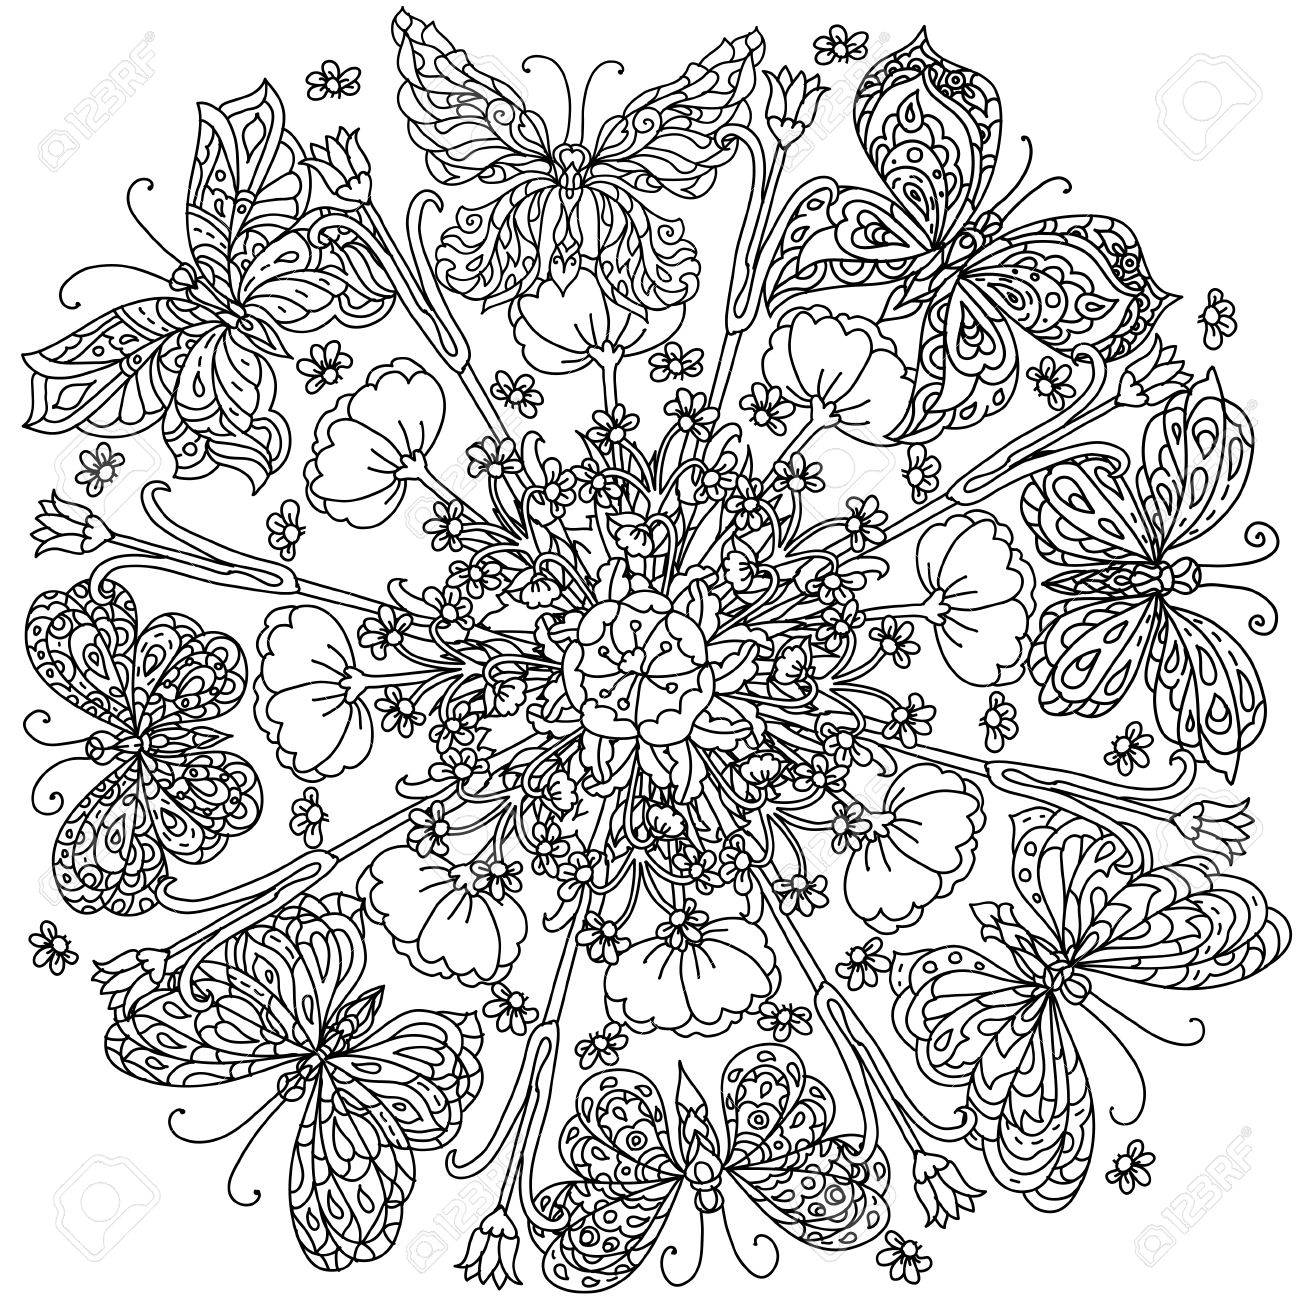 Mandala Shape Flowers And Butterfly For Adult Coloring Book In Zen Art Therapy Style Anti